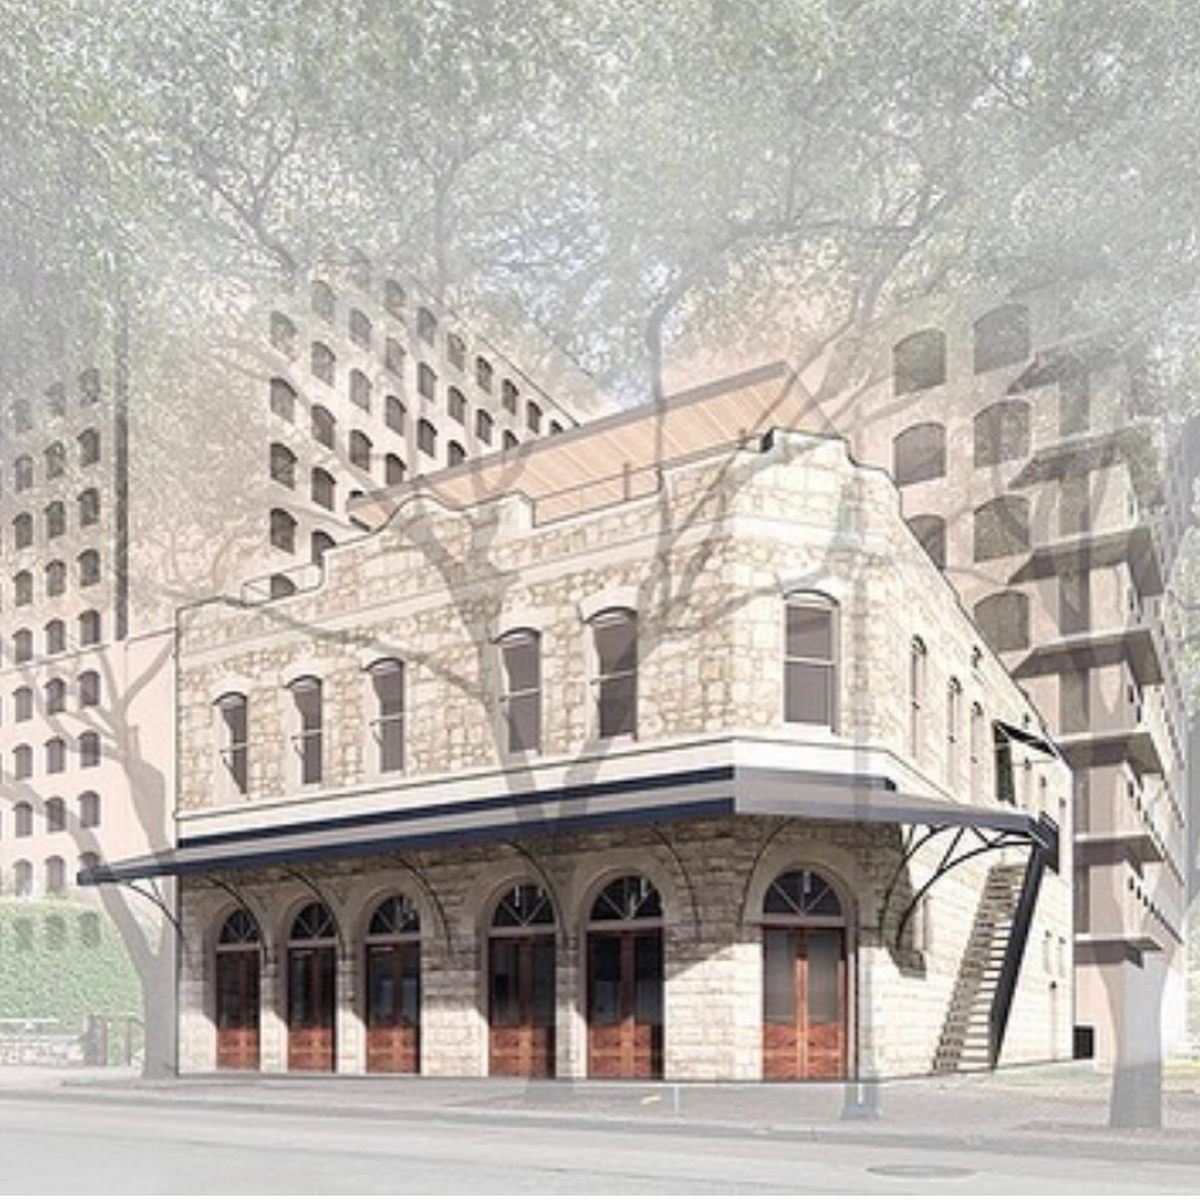 Built in 1896, the Randerson-Lundell building on E. 6th is being repurposed into a Class A corporate office space by Michael-Wes & Co. Design by @chioco_design